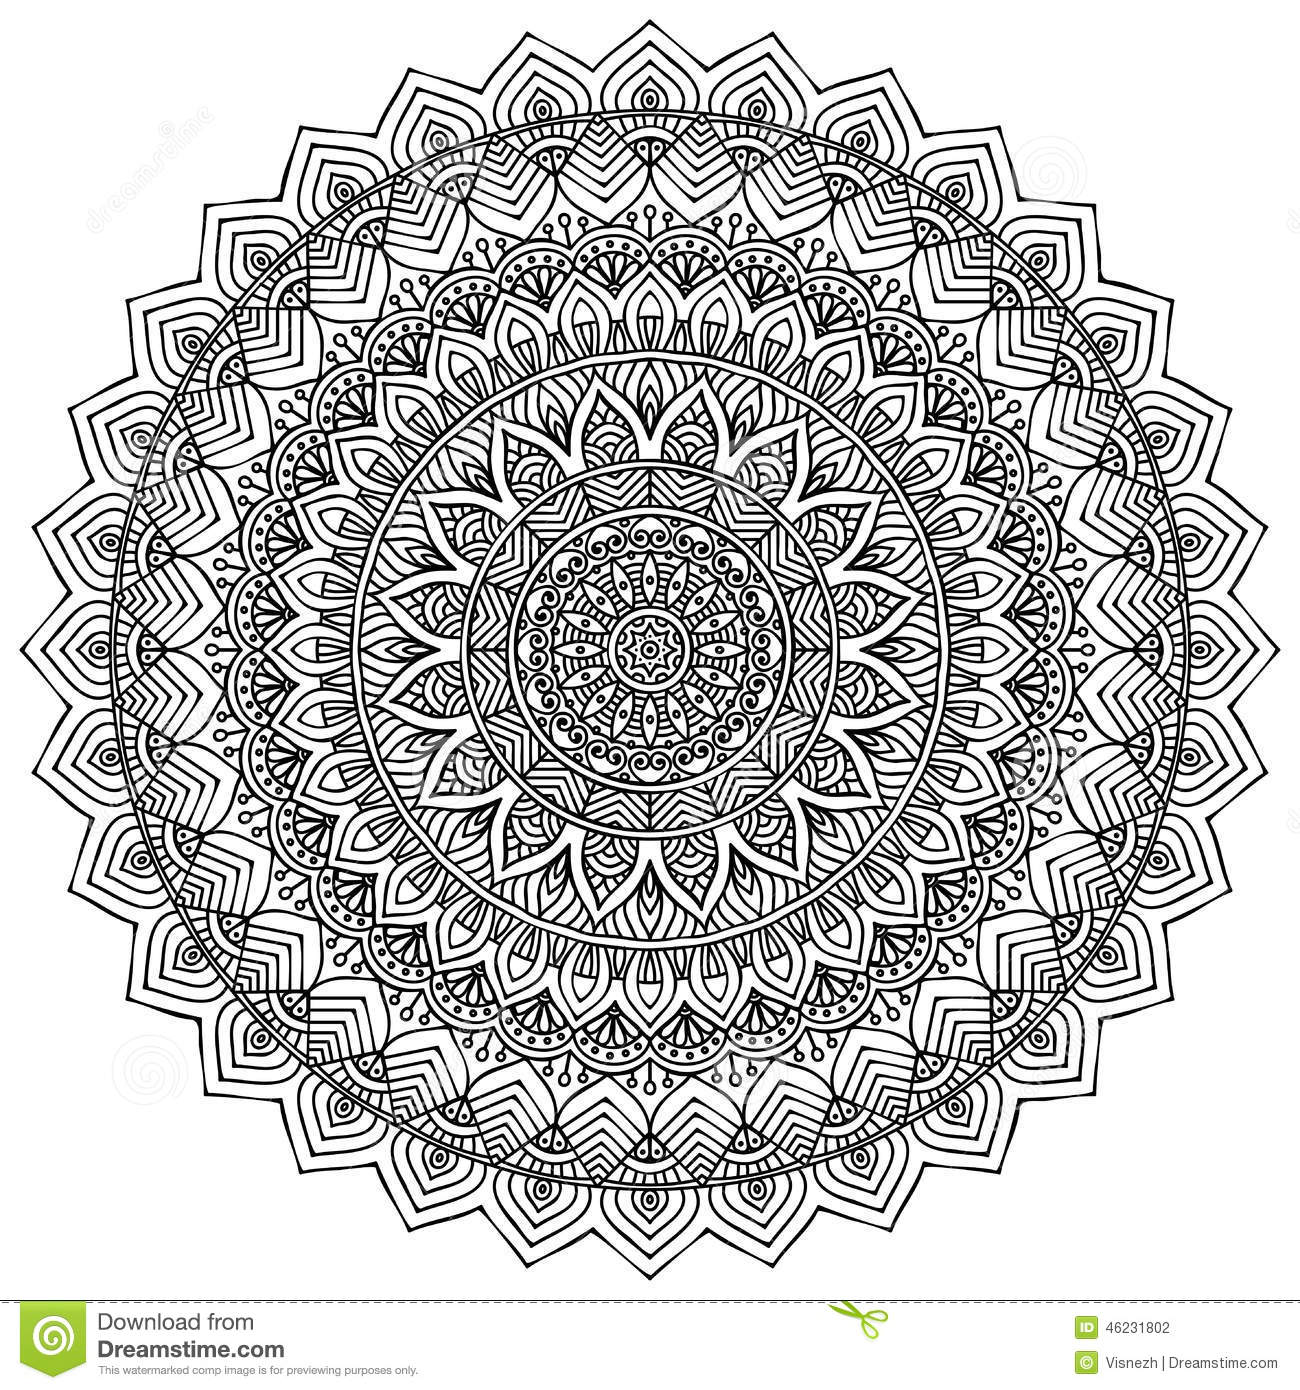 likewise mandala cœur colorear as well  additionally mandala 10 0d1a4 together with  together with 9i46o5a6T besides  as well  furthermore  likewise flower mandala coloring pages adult 10 furthermore . on simple mosaic coloring pages for adults